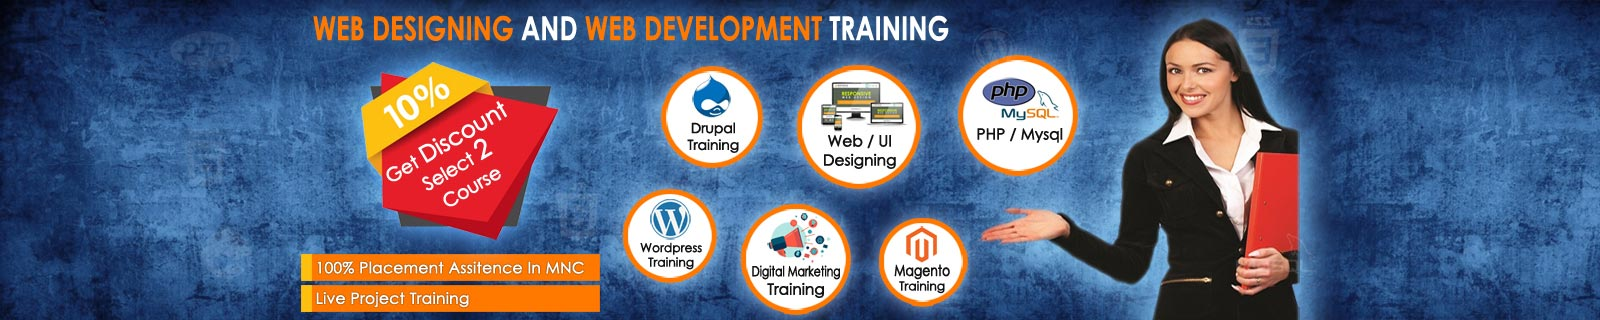 Whatsapp at 09347045052  Php training in Hyderabad | Web Designing